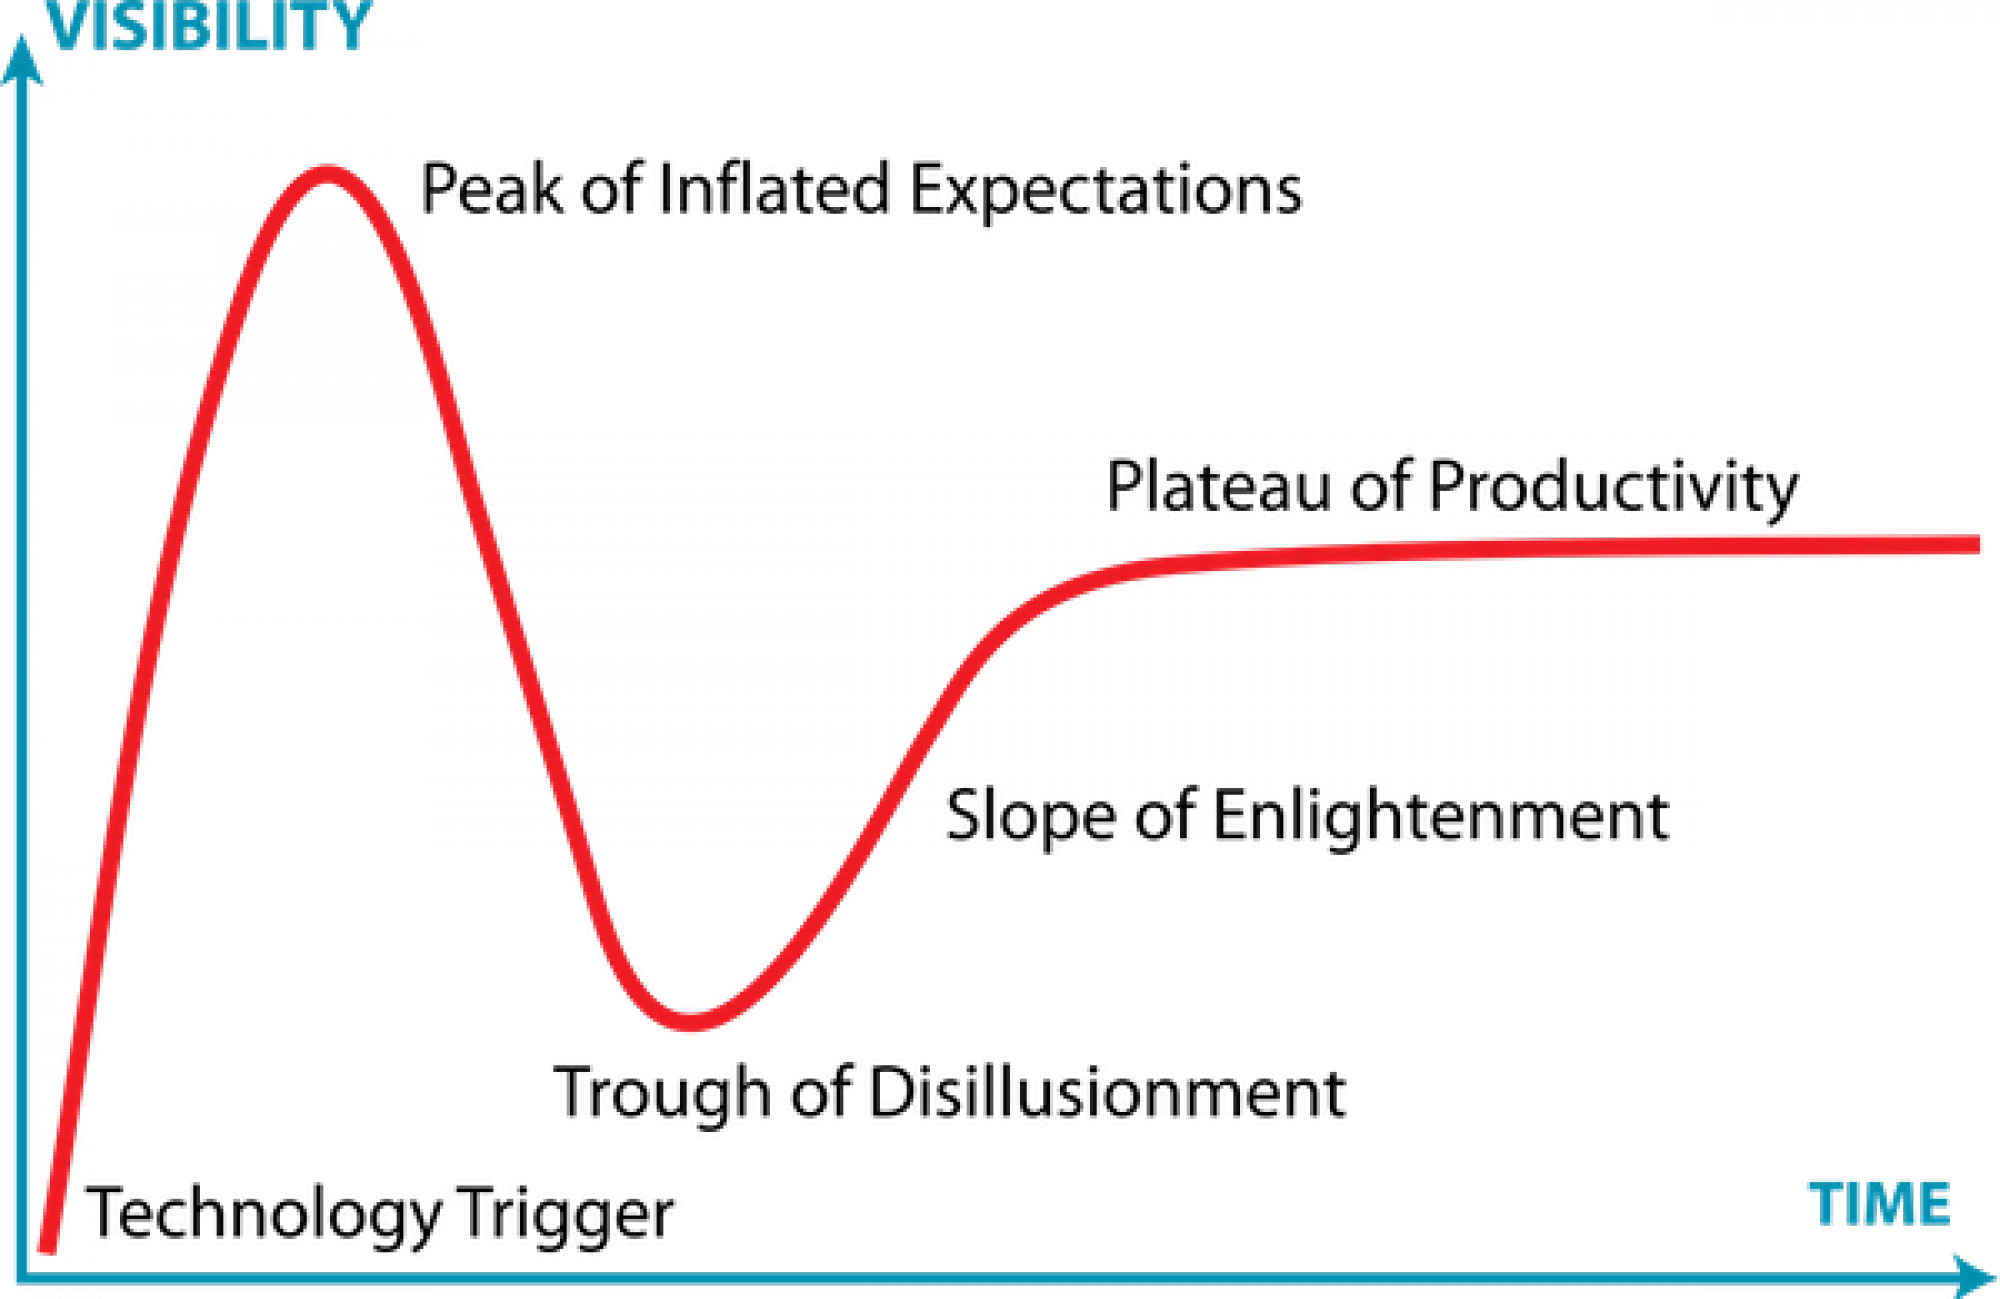 A hype cycle is a graphic representation of the maturity, adoption and social application of specific technologies. The term was coined by Gartner, Inc. (Wikipedia)